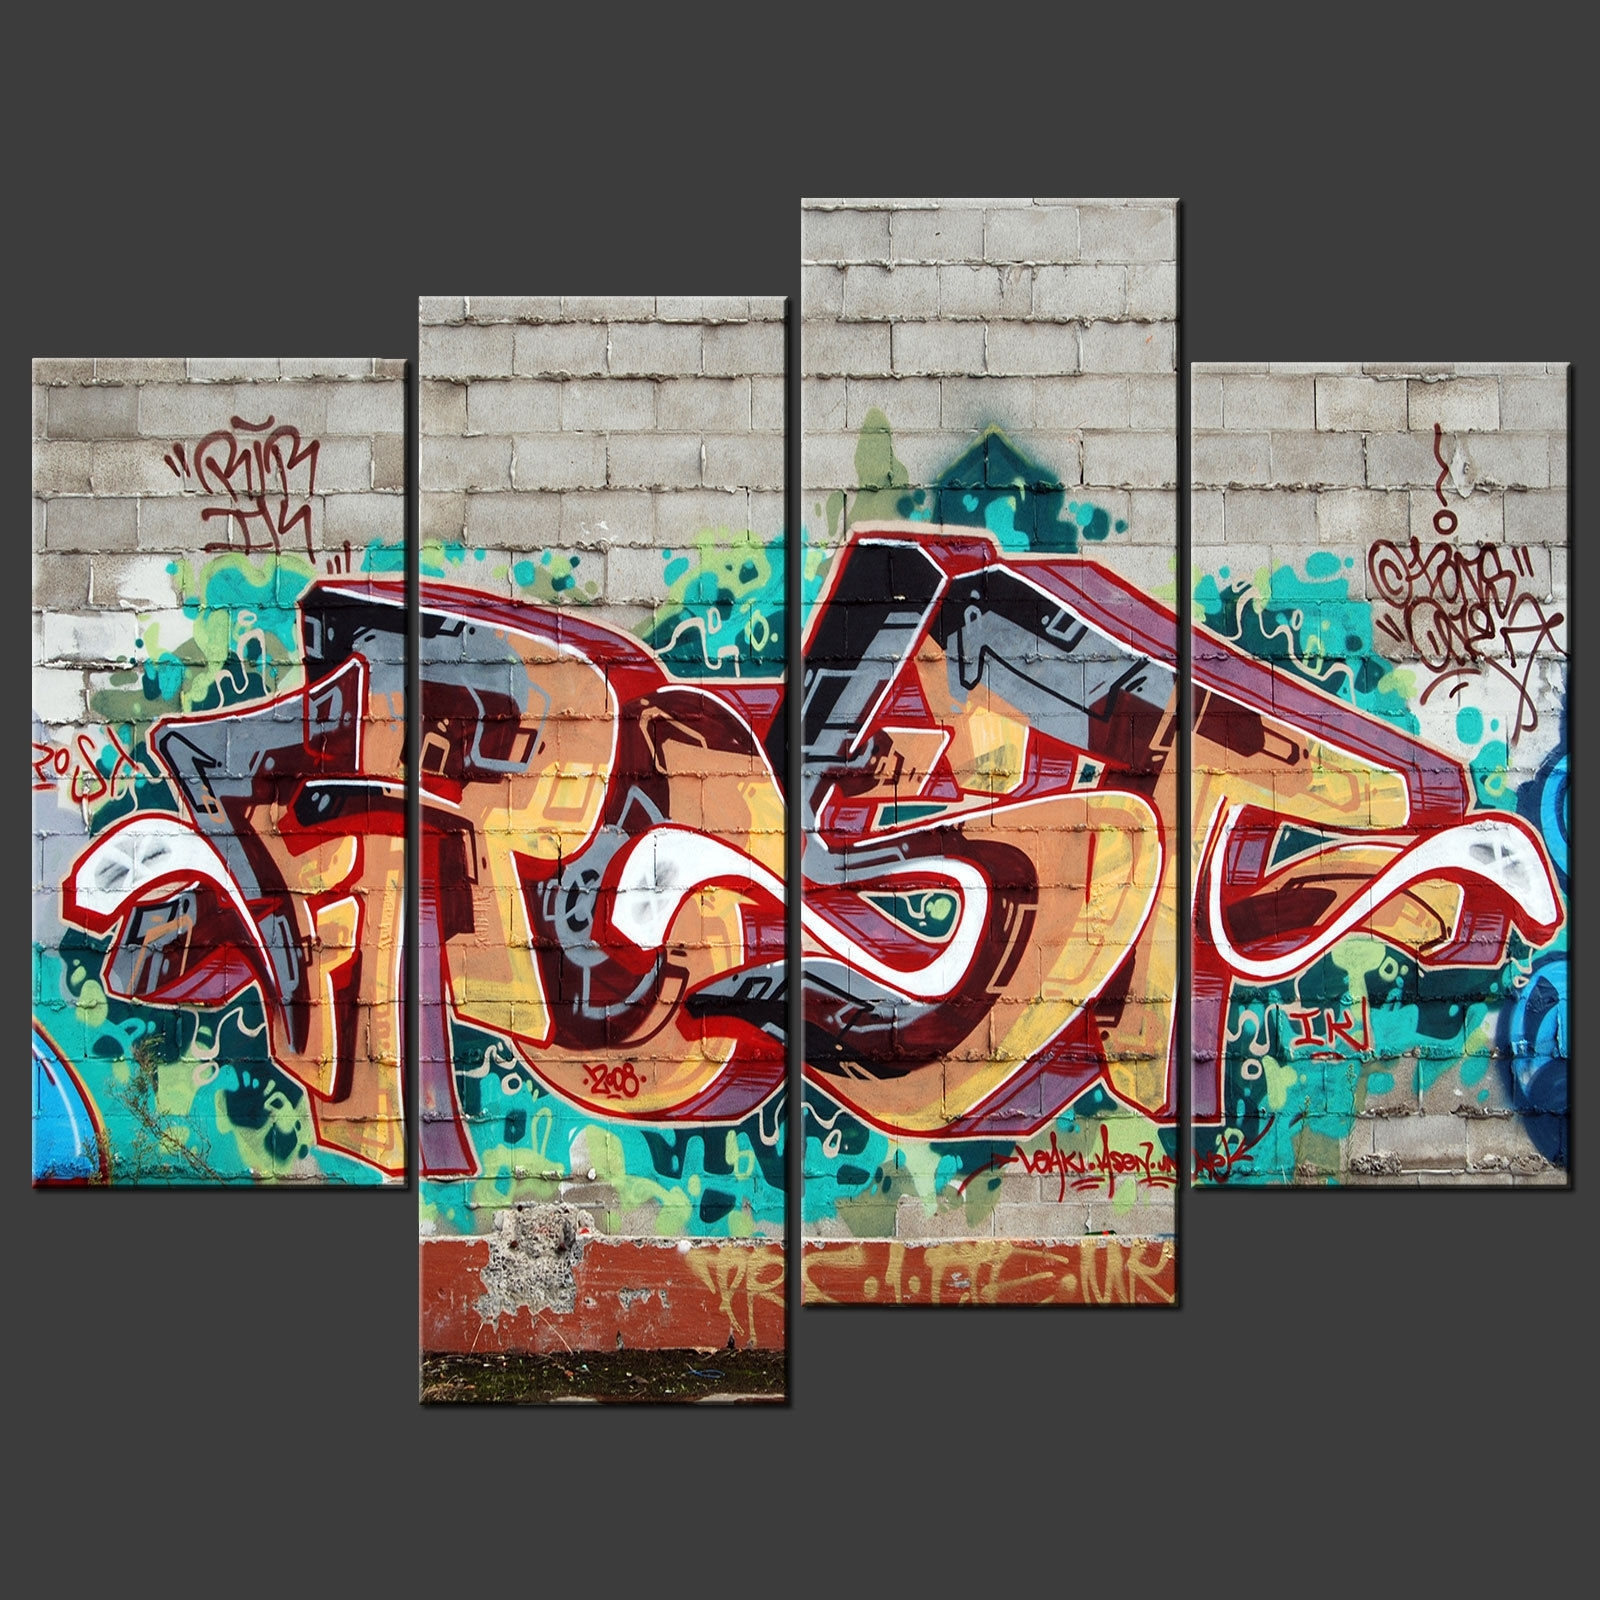 Wall Art Decor: Multi Panel Graffiti Canvas Wall Art Awesome Regarding Newest Abstract Graffiti Wall Art (View 15 of 20)